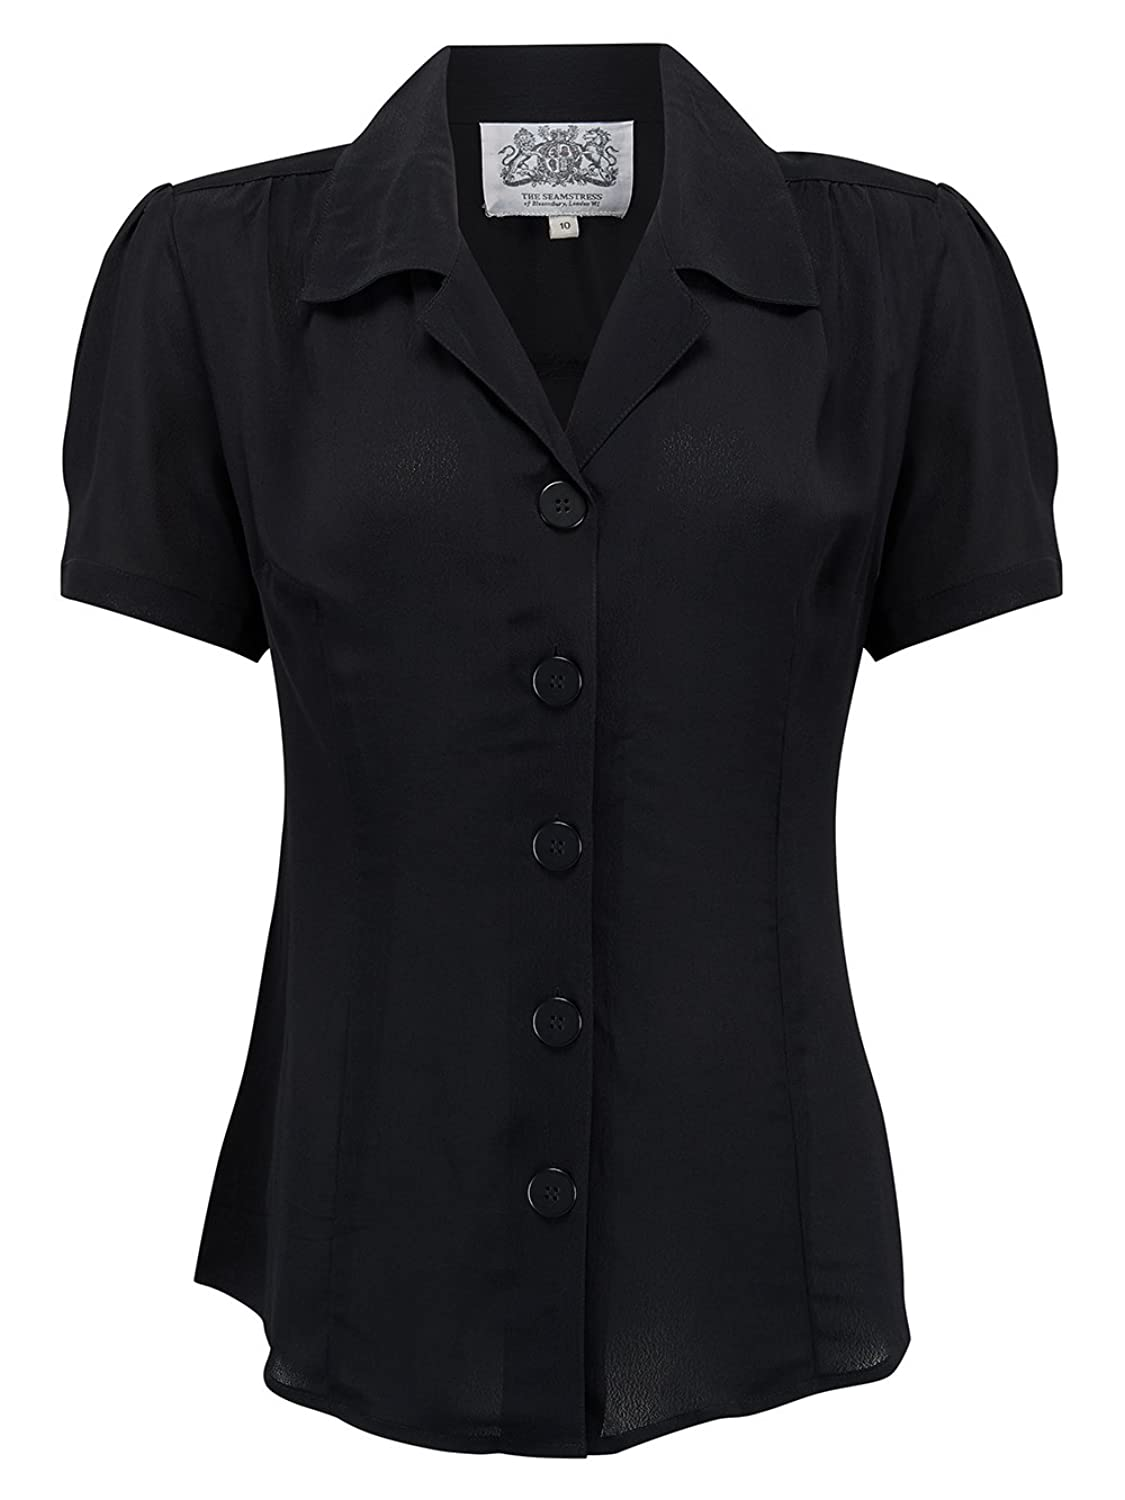 cfc54305 1940s Blouses and Tops 1940s Vintage Grace Blouse in Black by The  Seamstress of Bloomsbury